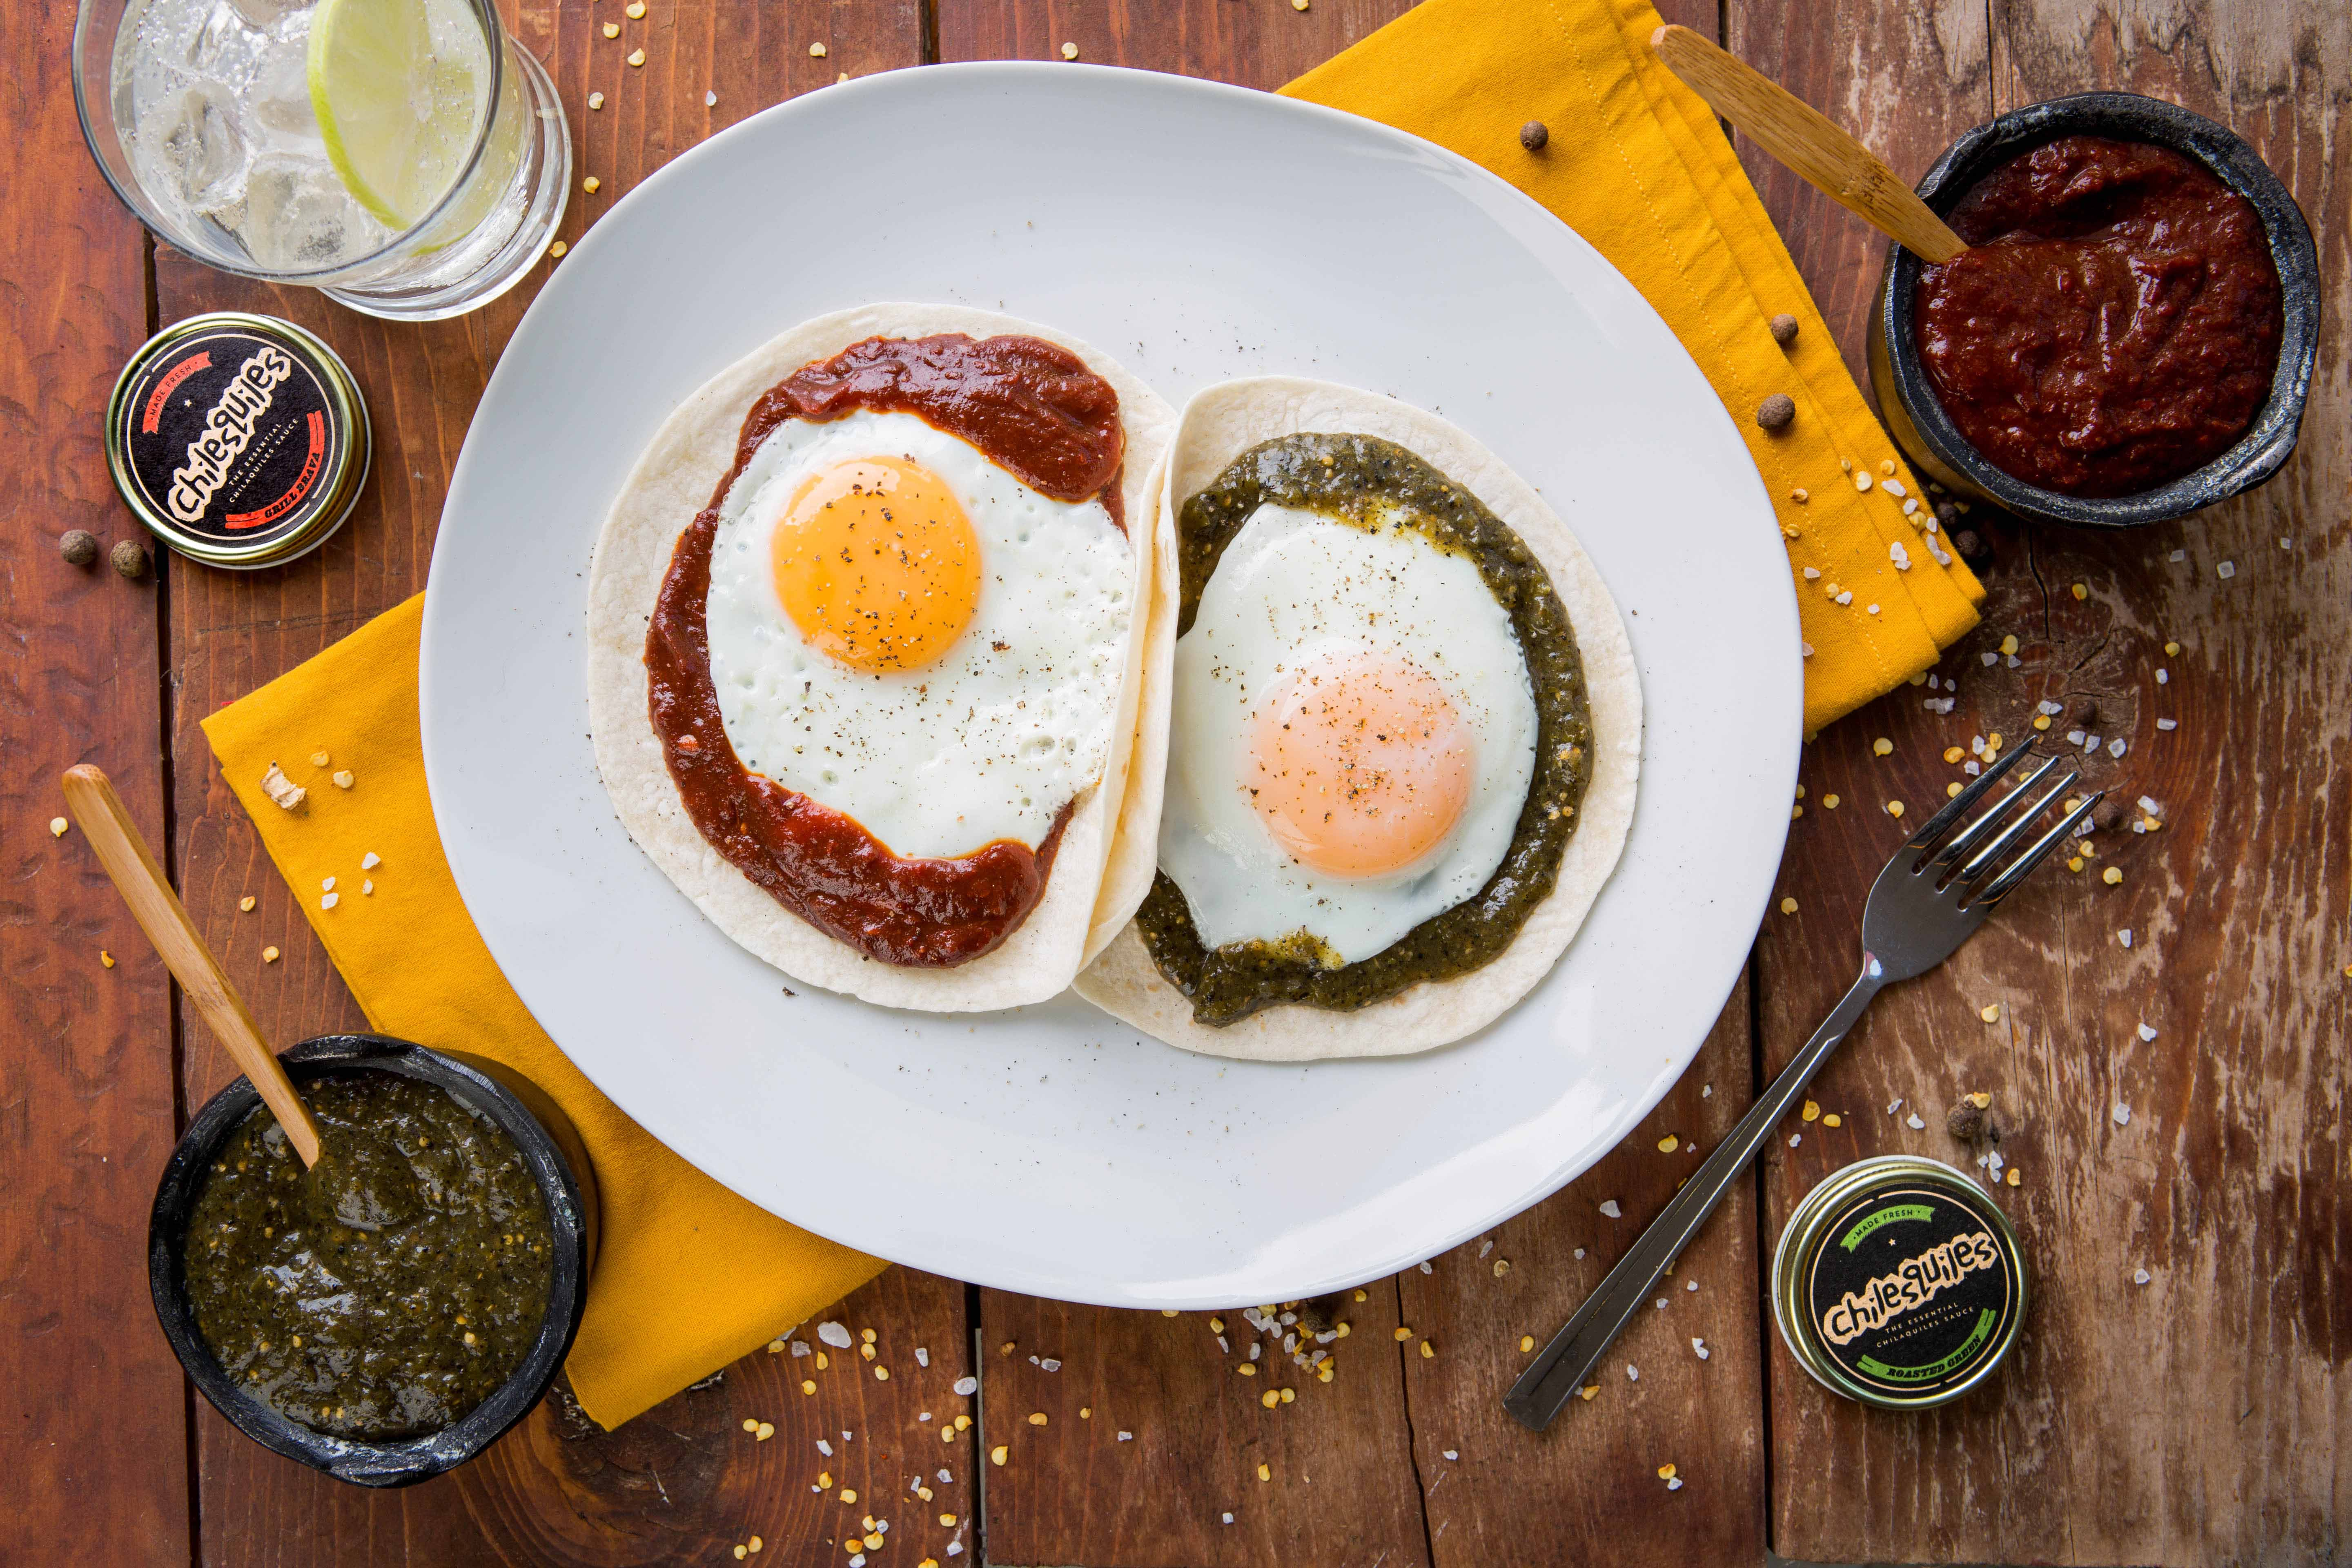 HUEVOS DIVORCIADOS WITH SIGNATURE RED AND ROASTED GREEN